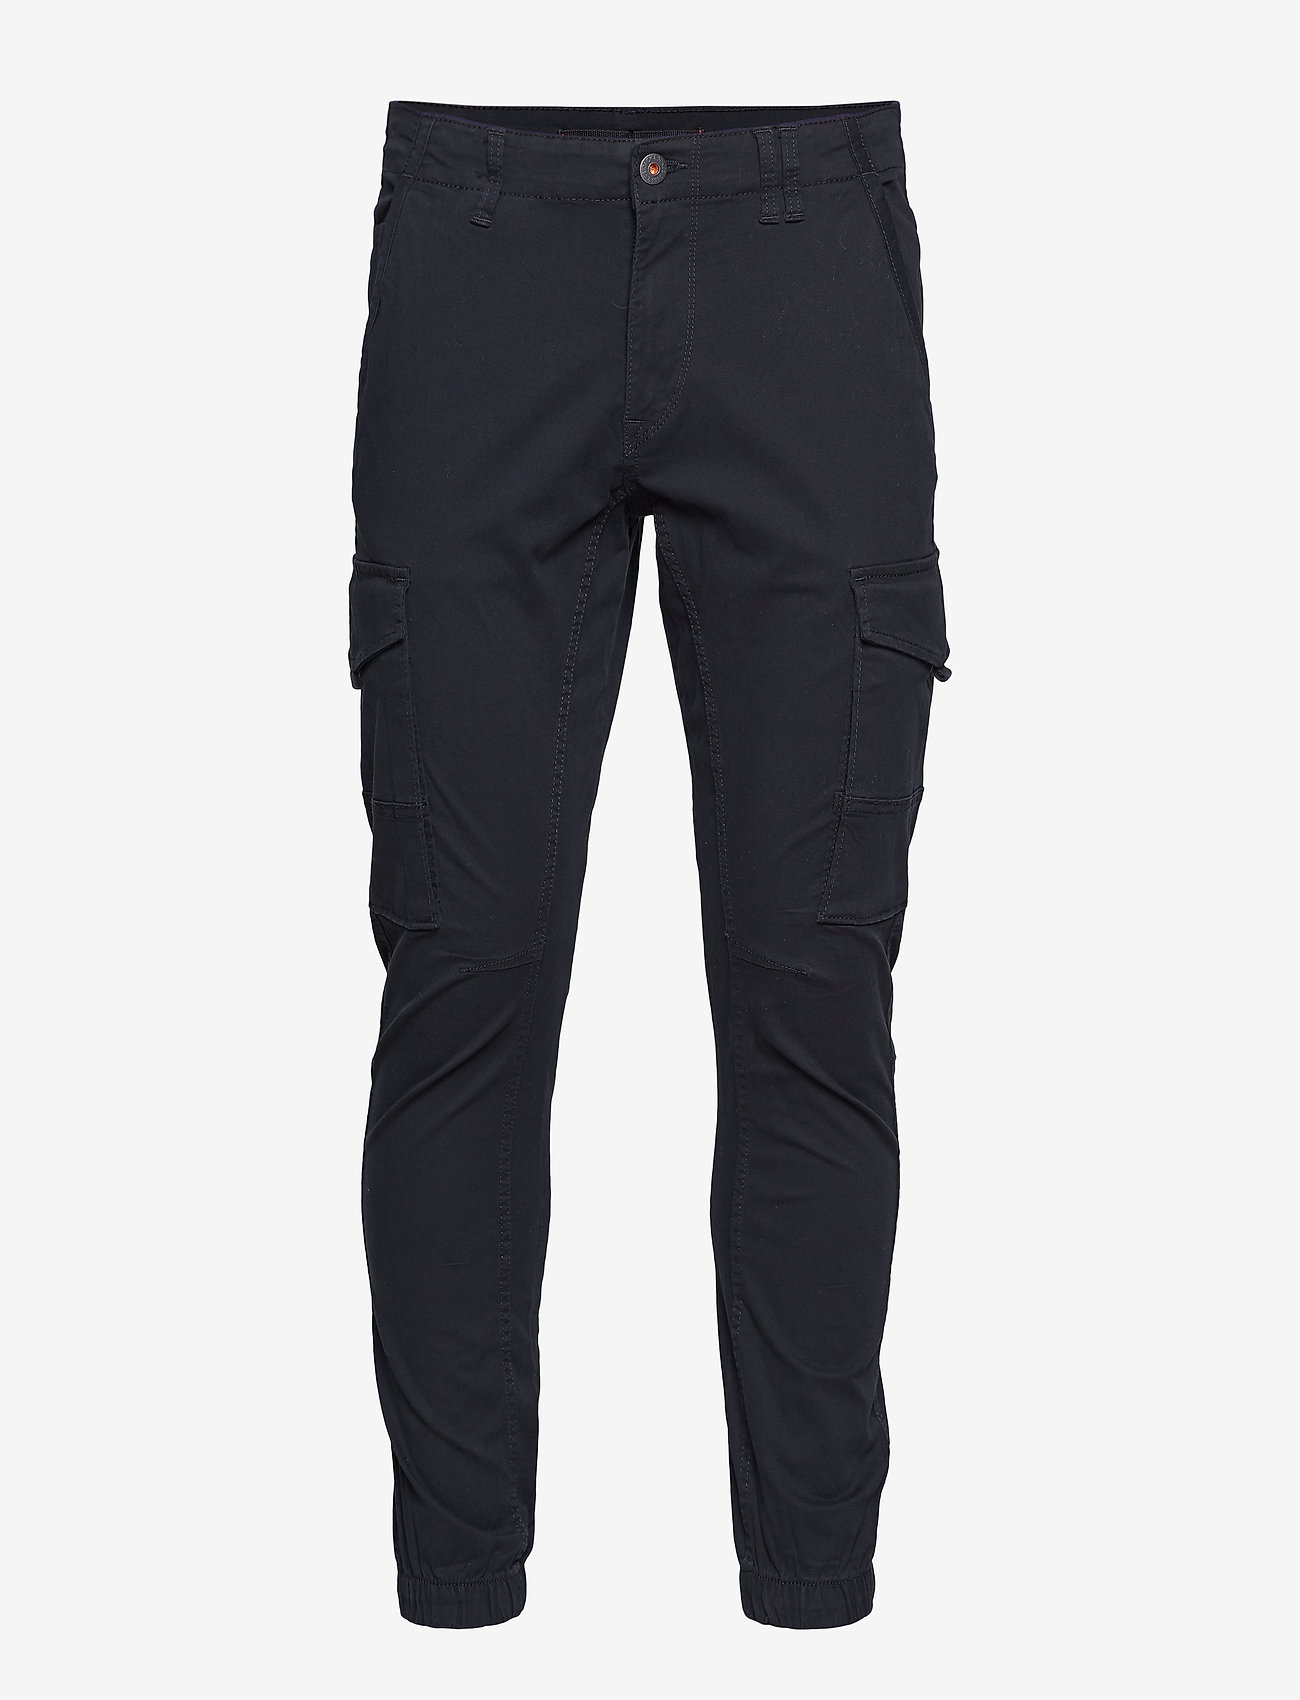 Jack & Jones - JJIPAUL JJFLAKE AKM 542 BLACK NOOS - cargo housut - black - 0